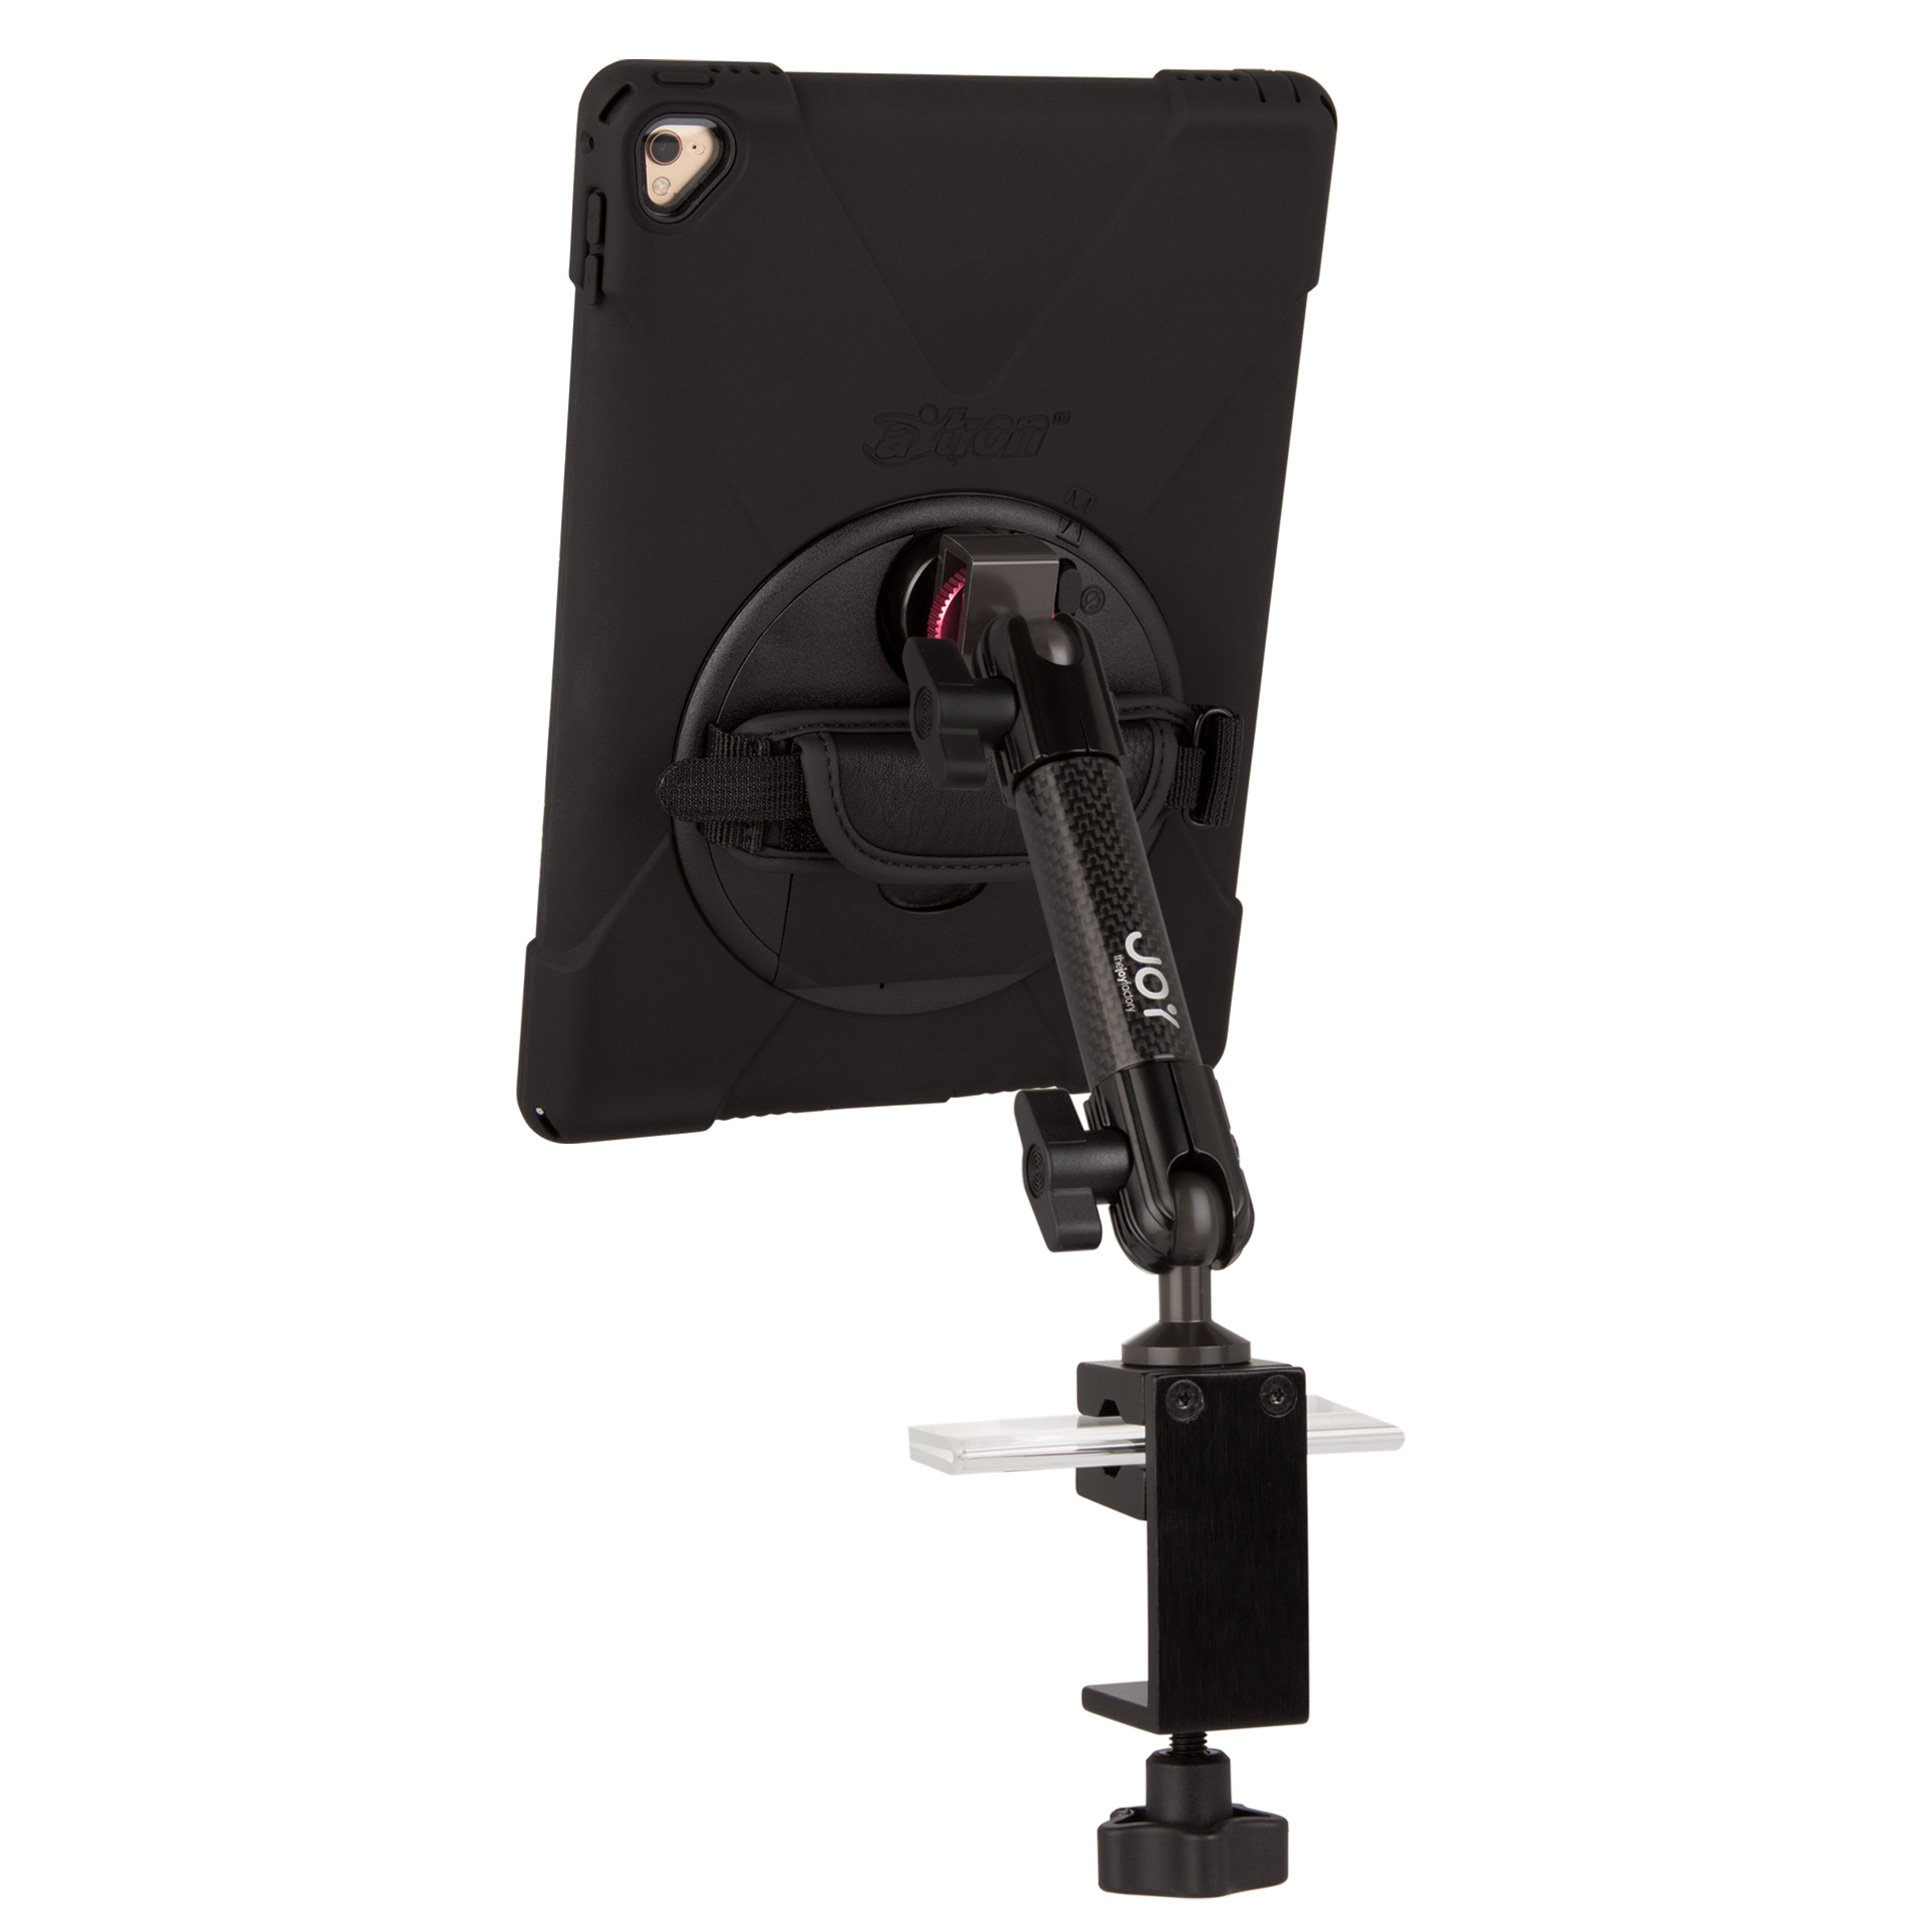 The Joy Factory MagConnect Carbon Fiber C-Clamp Mount with aXtion Bold MP Water-Resistant Rugged Shockproof Case for iPad 9.7 5th Gen, Built-In Screen Protector, Hand Strap, Kickstand (MWA602MP)